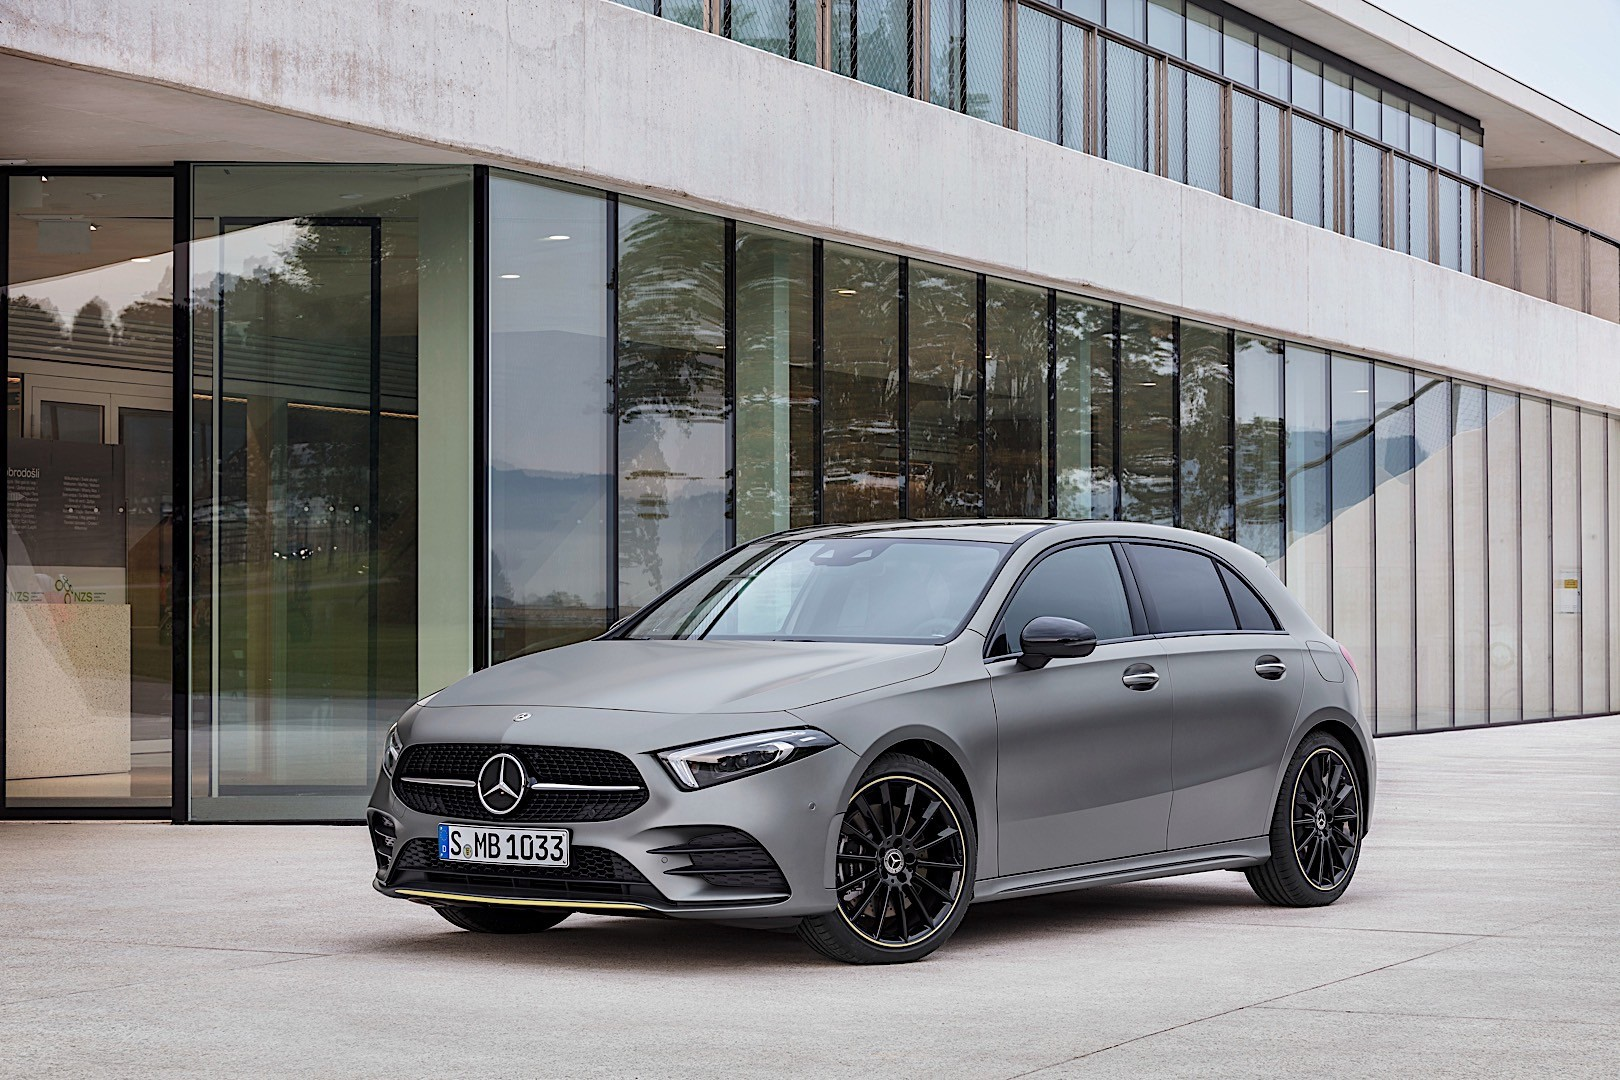 2019 mercedes benz a 200 and a 220 d getting 2 0 liter diesel this year autoevolution. Black Bedroom Furniture Sets. Home Design Ideas